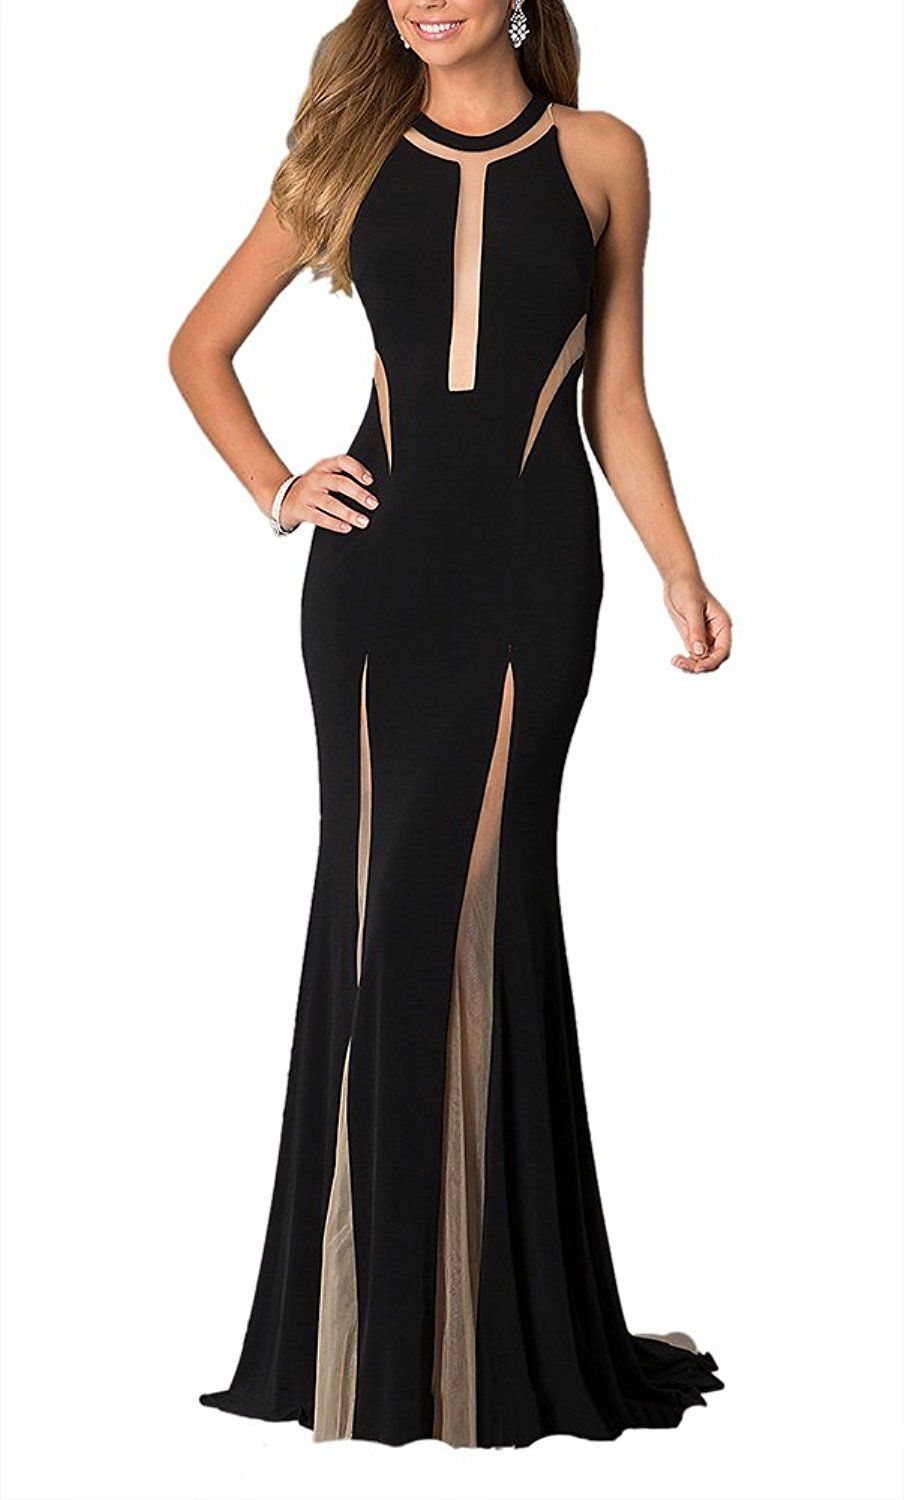 Lecheers women seethrough sexy bodycon prom wedding evening maxi